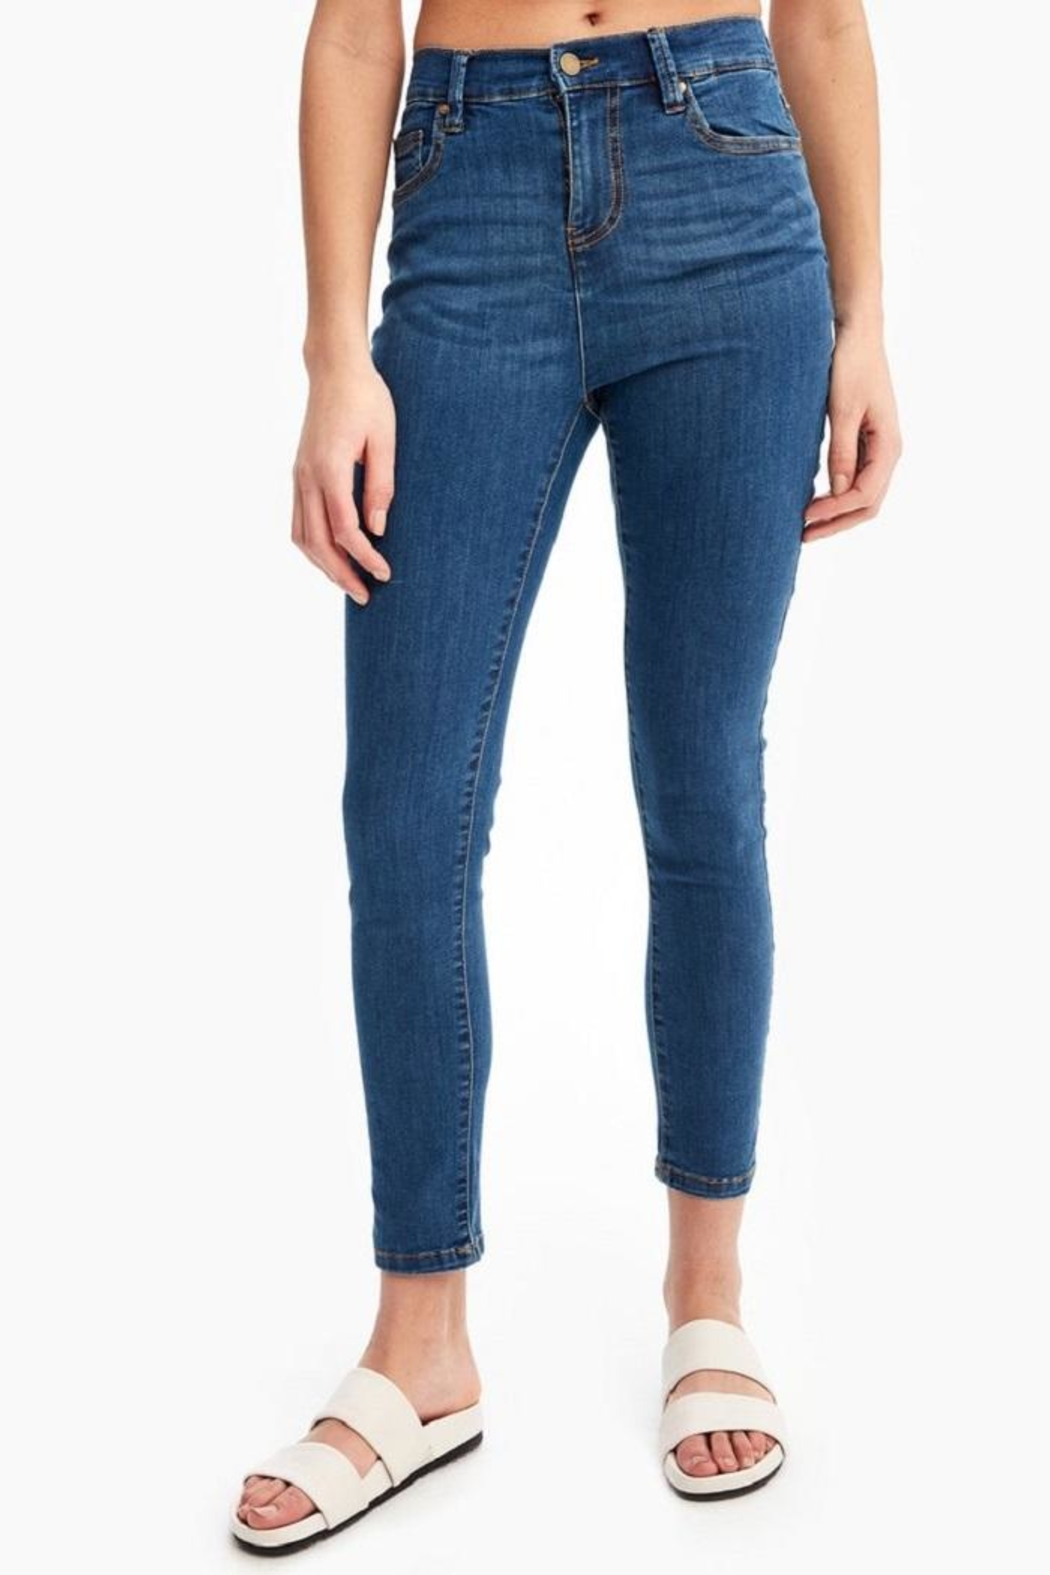 Lole Skinny High-Waisted Jeans - Main Image